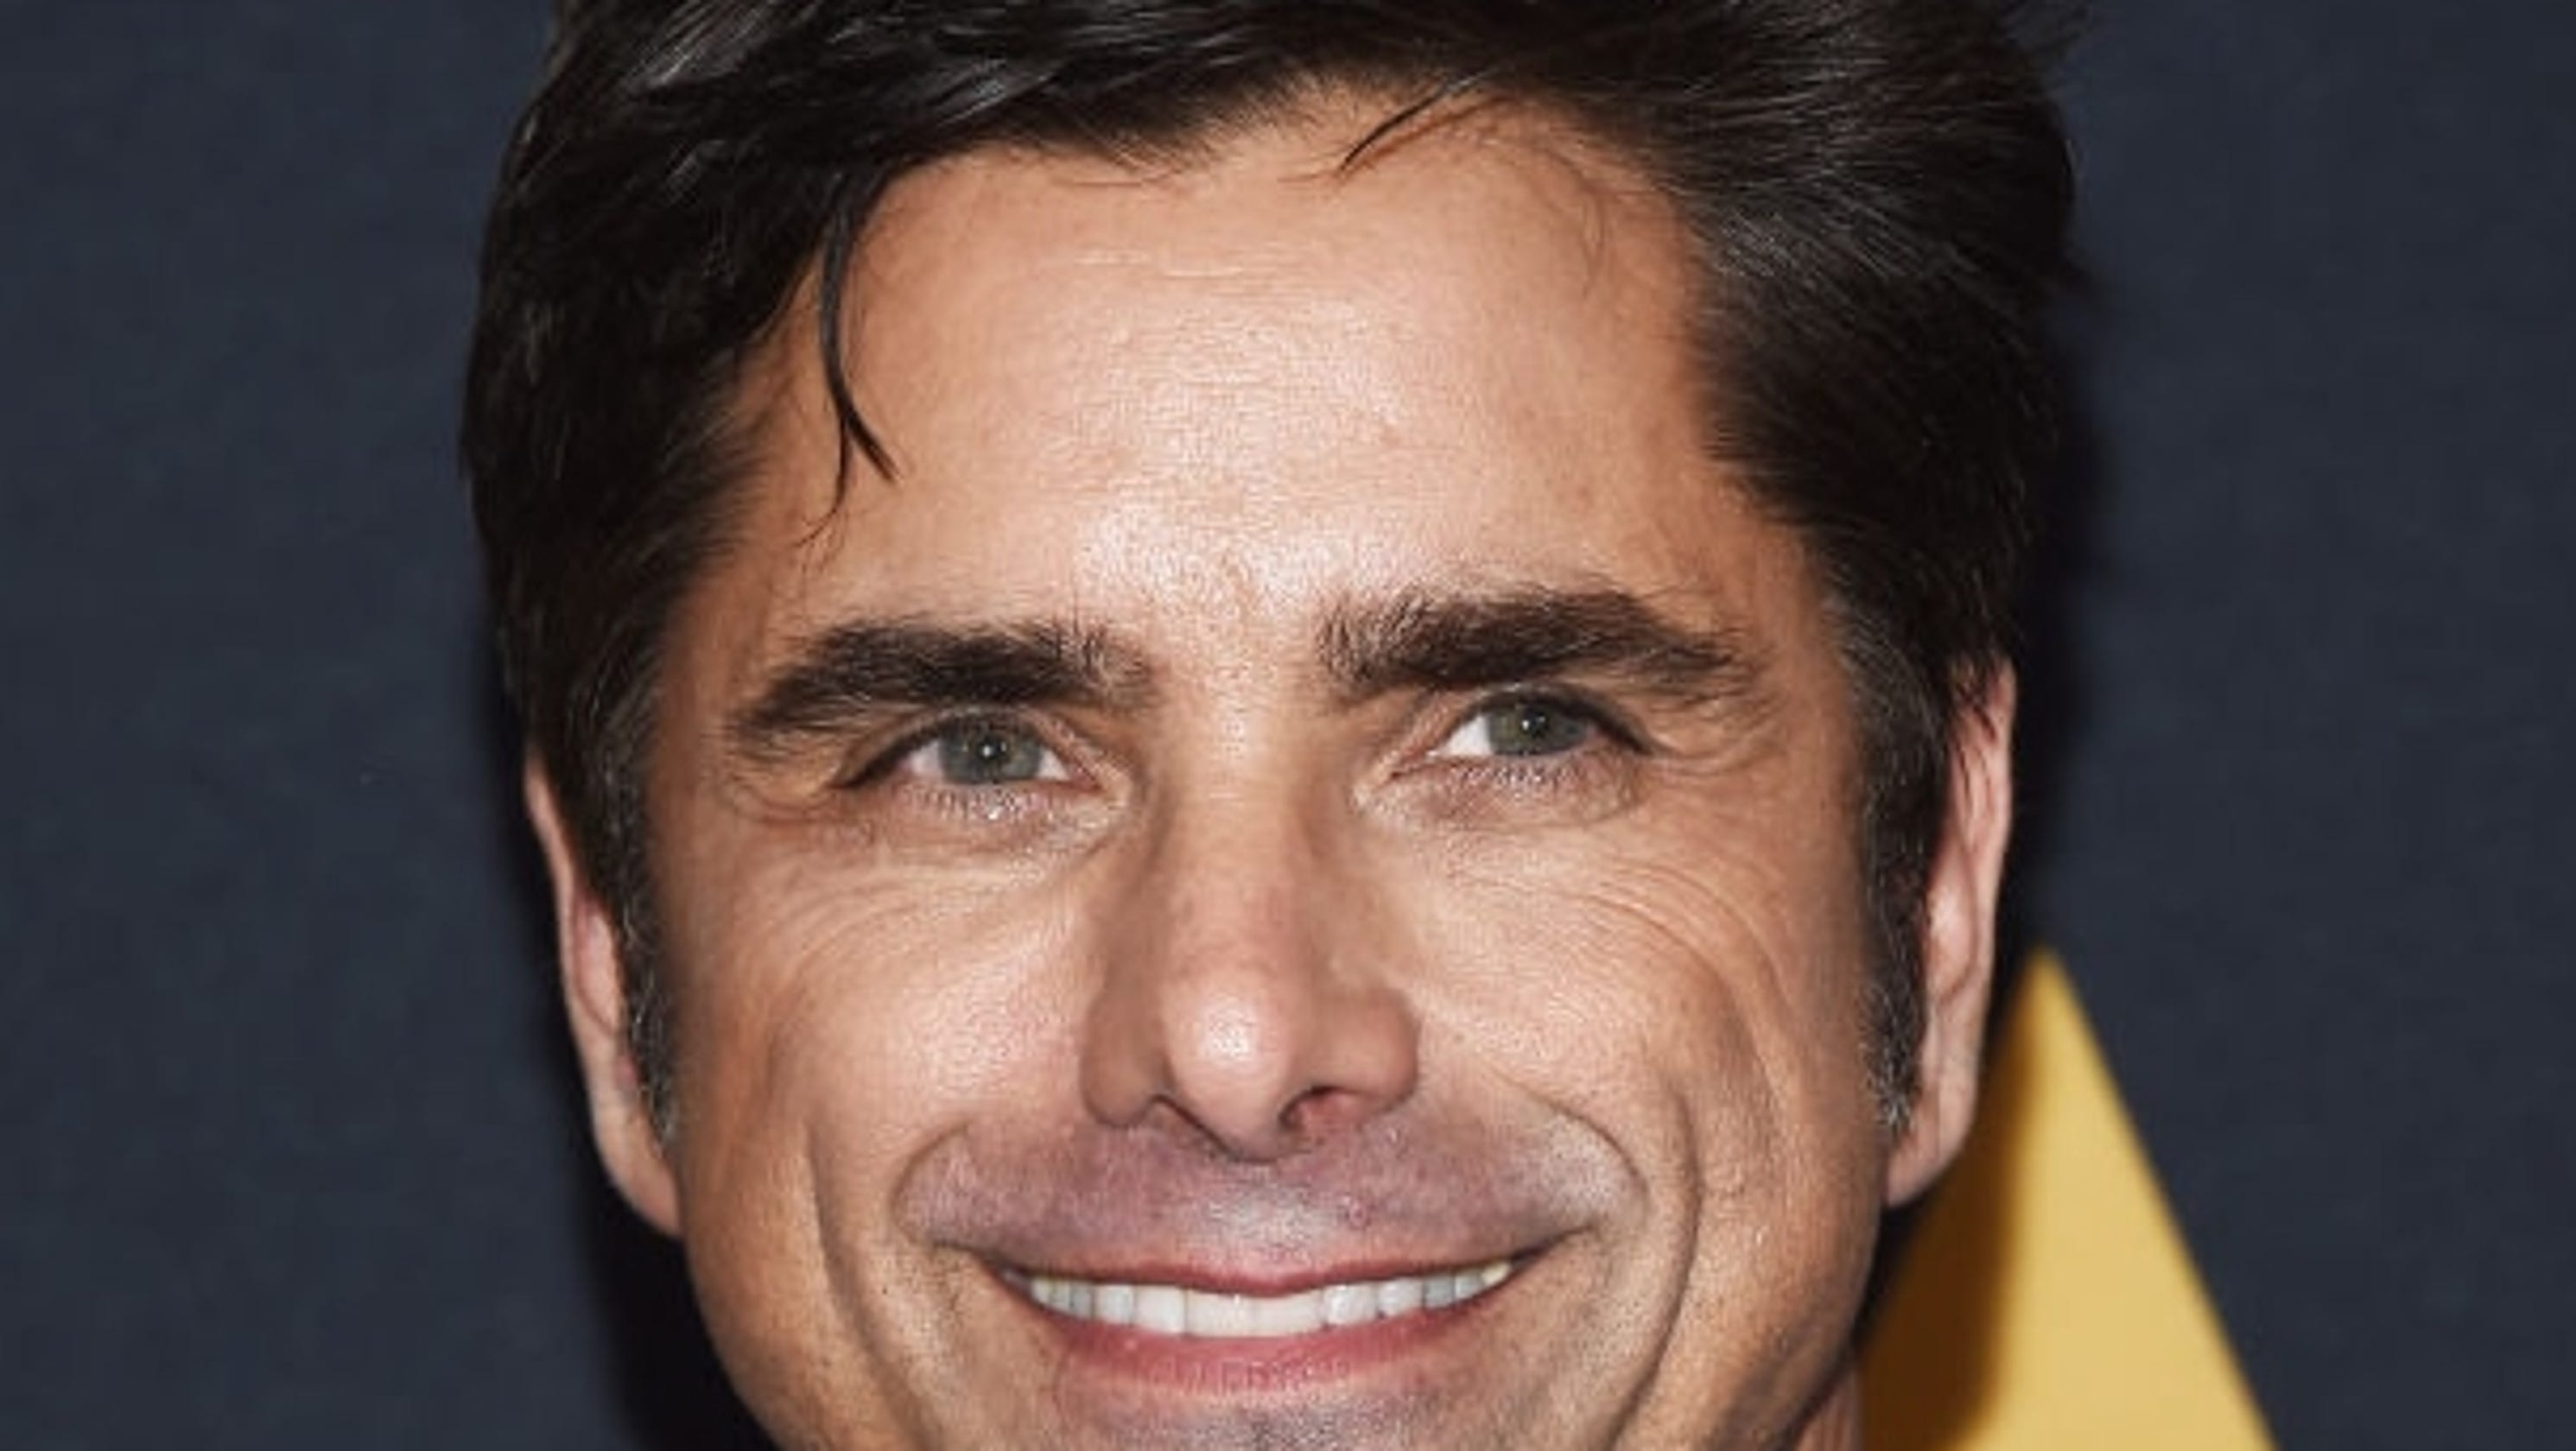 John Stamos shares details of son's premature birth: 'I was always meant to be a father'